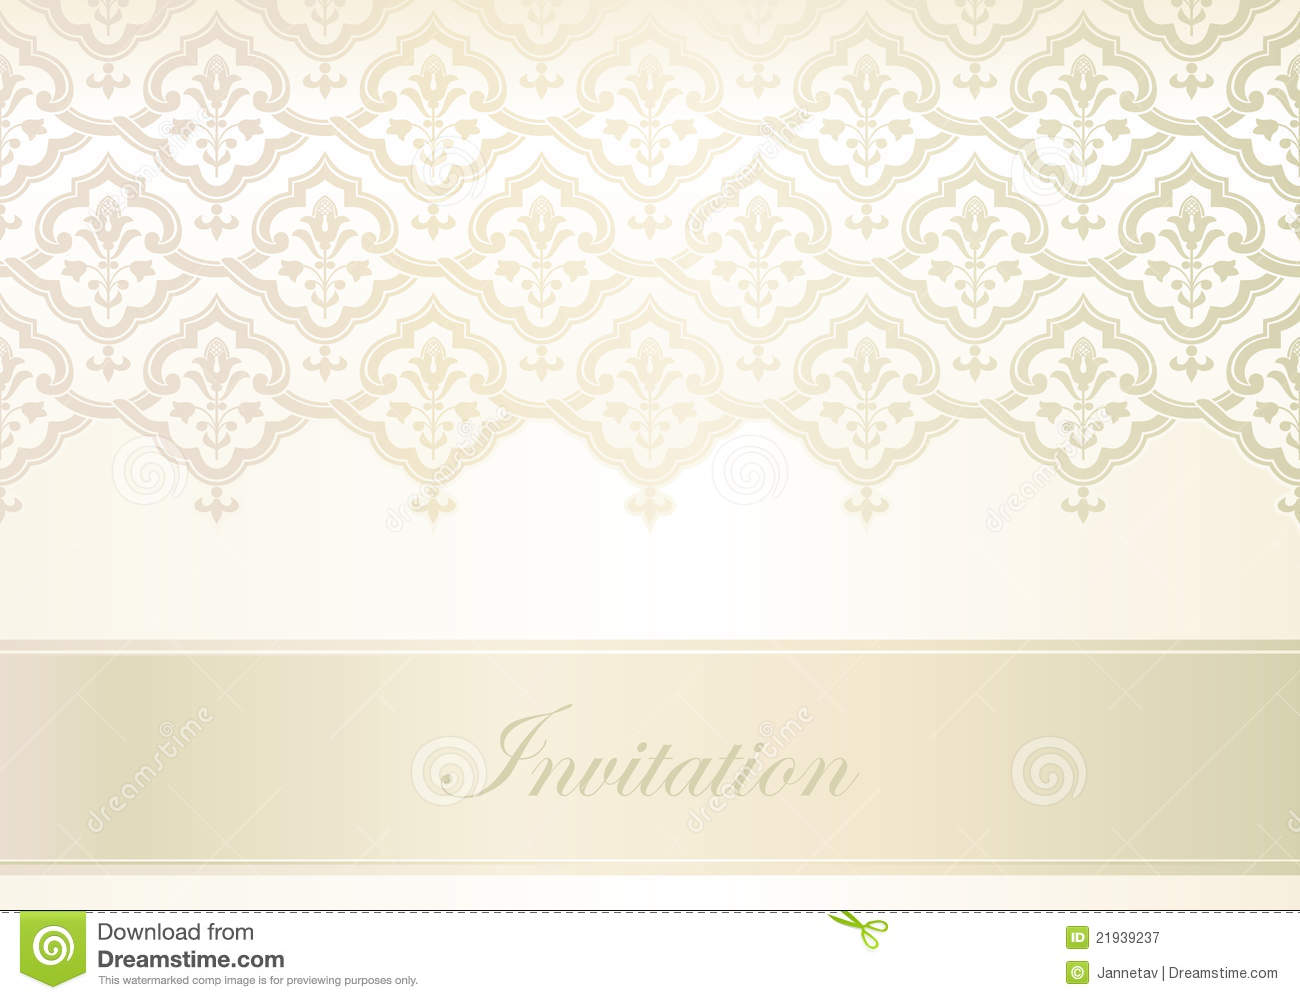 invitation cards templates template loan agreement best wedding invitation cards design good resume template singapore template invitation card 21939237 wedding invitation cards